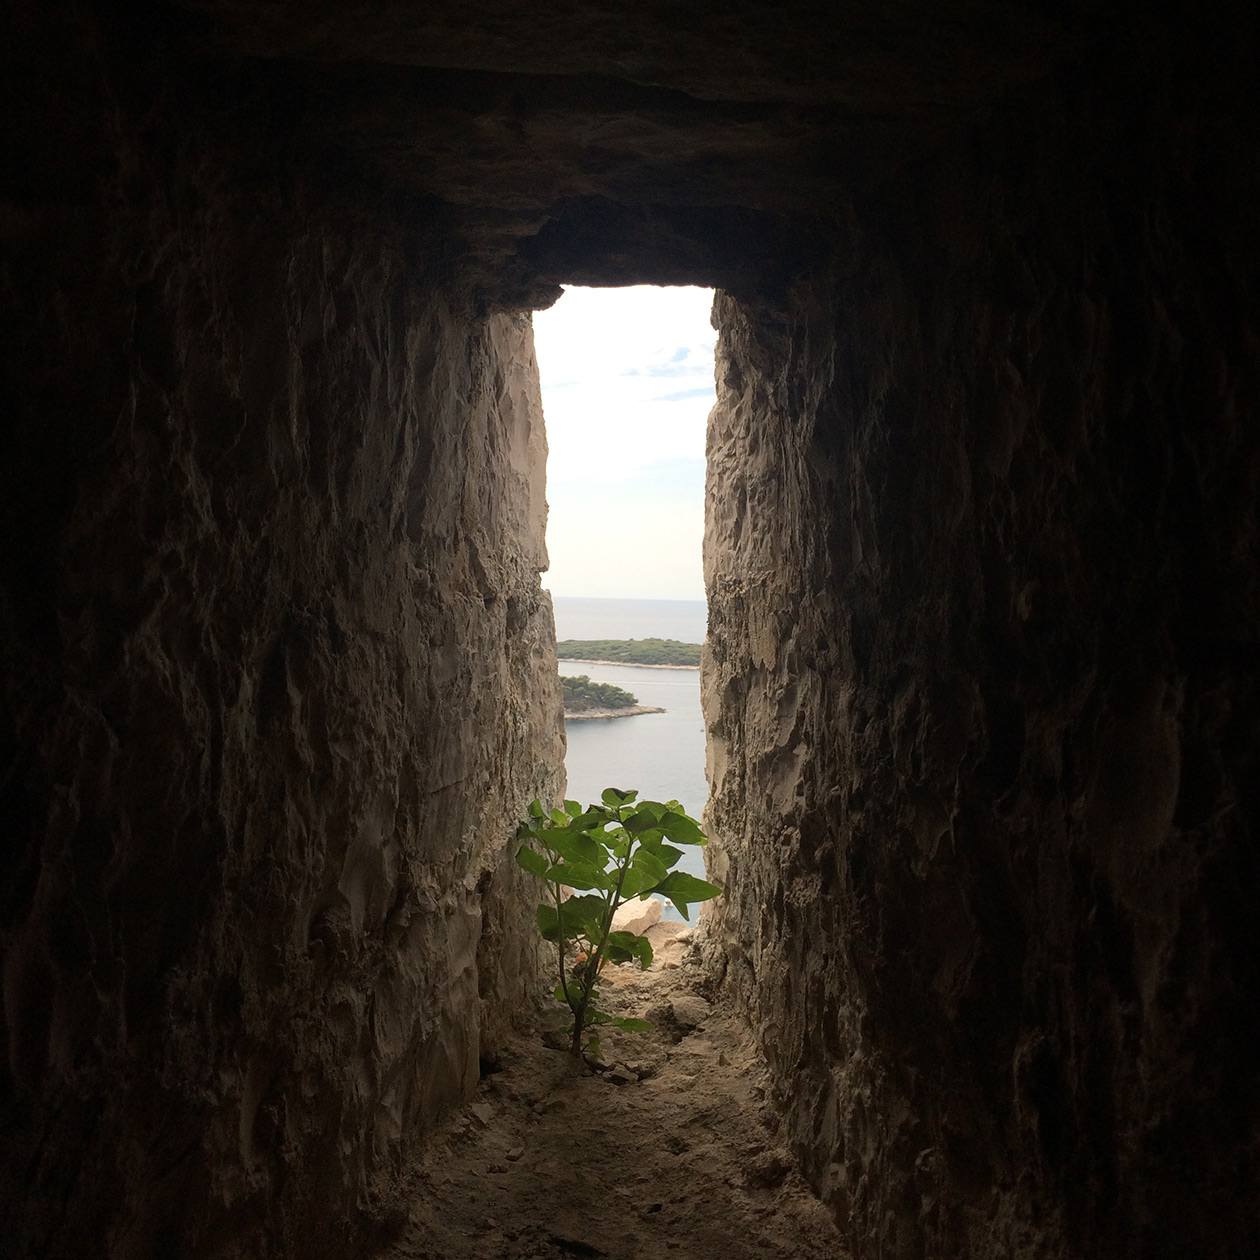 dungeon prison fortress hvar city island croatia travel